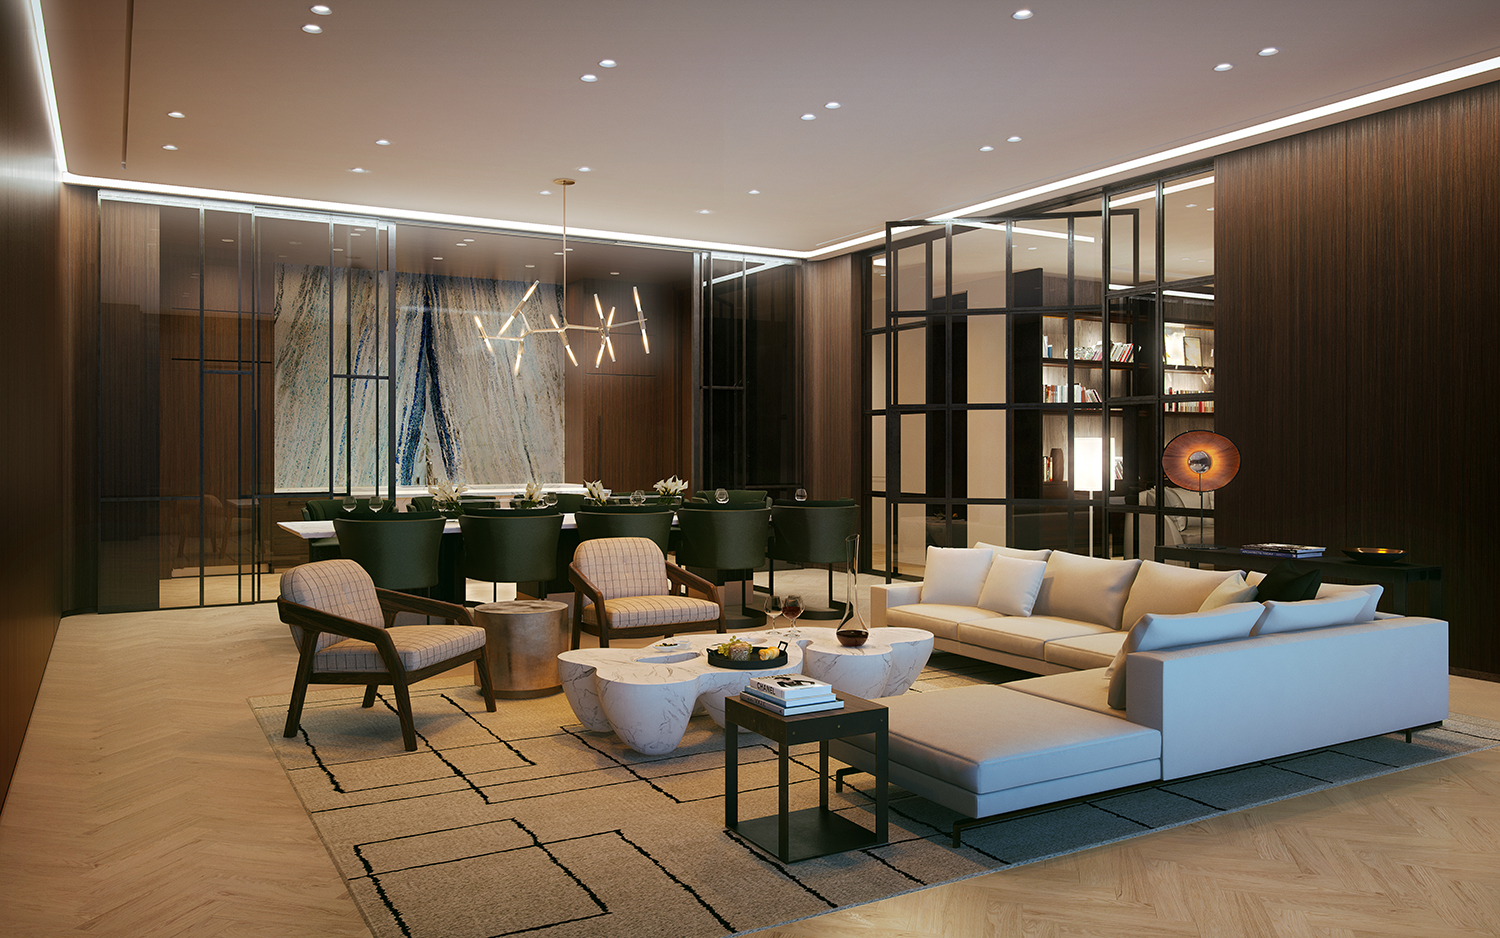 Rendering of the residents lounge at 456 Washington Street. Exclusive to YIMBY.